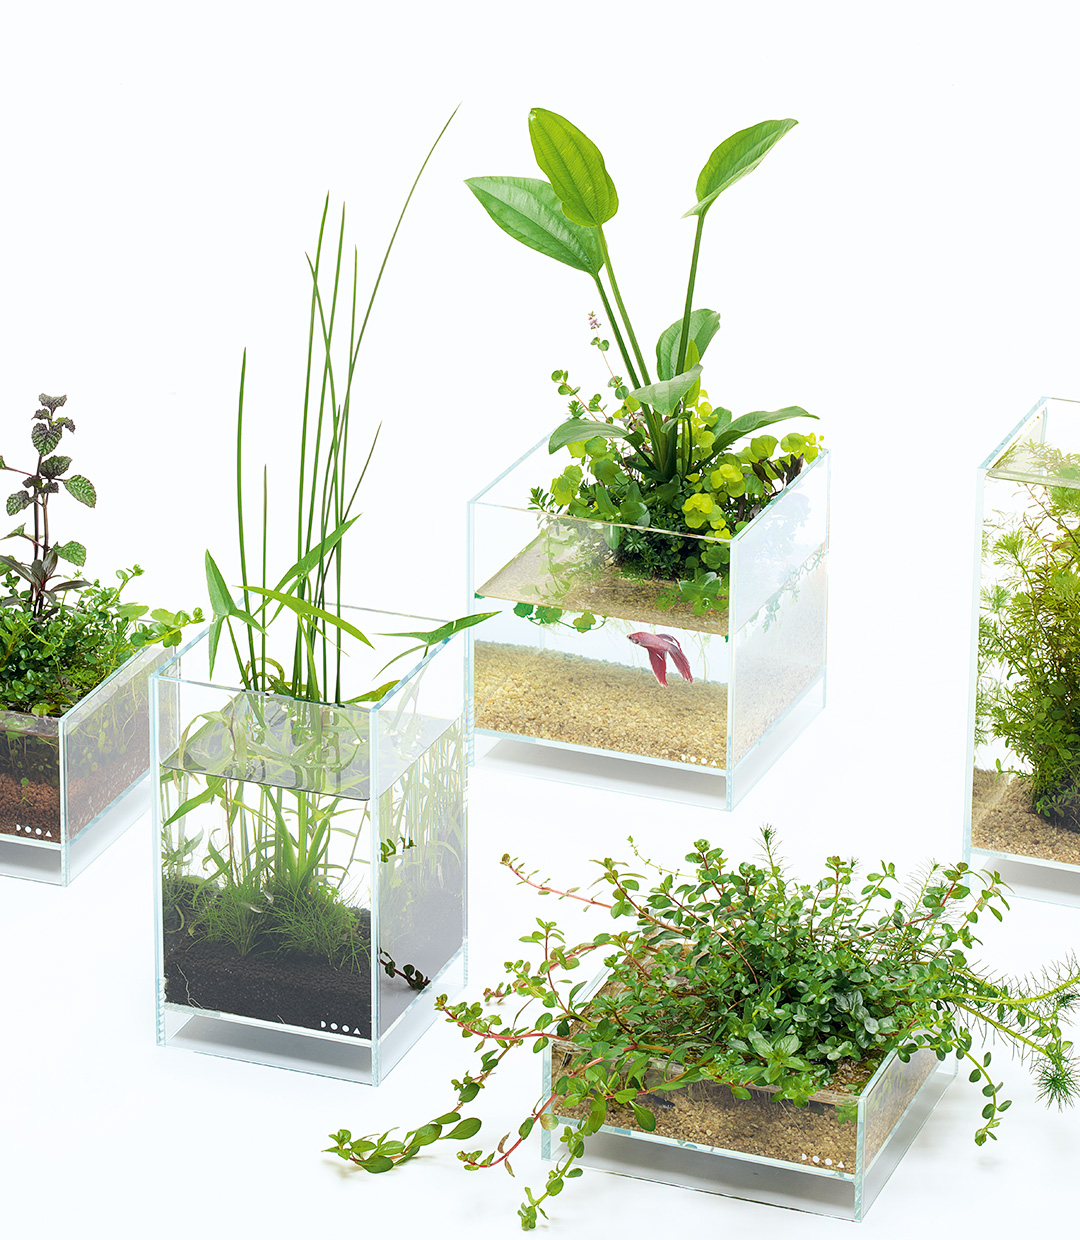 Enjoying Wabi-Kusa with Neo Glass Air